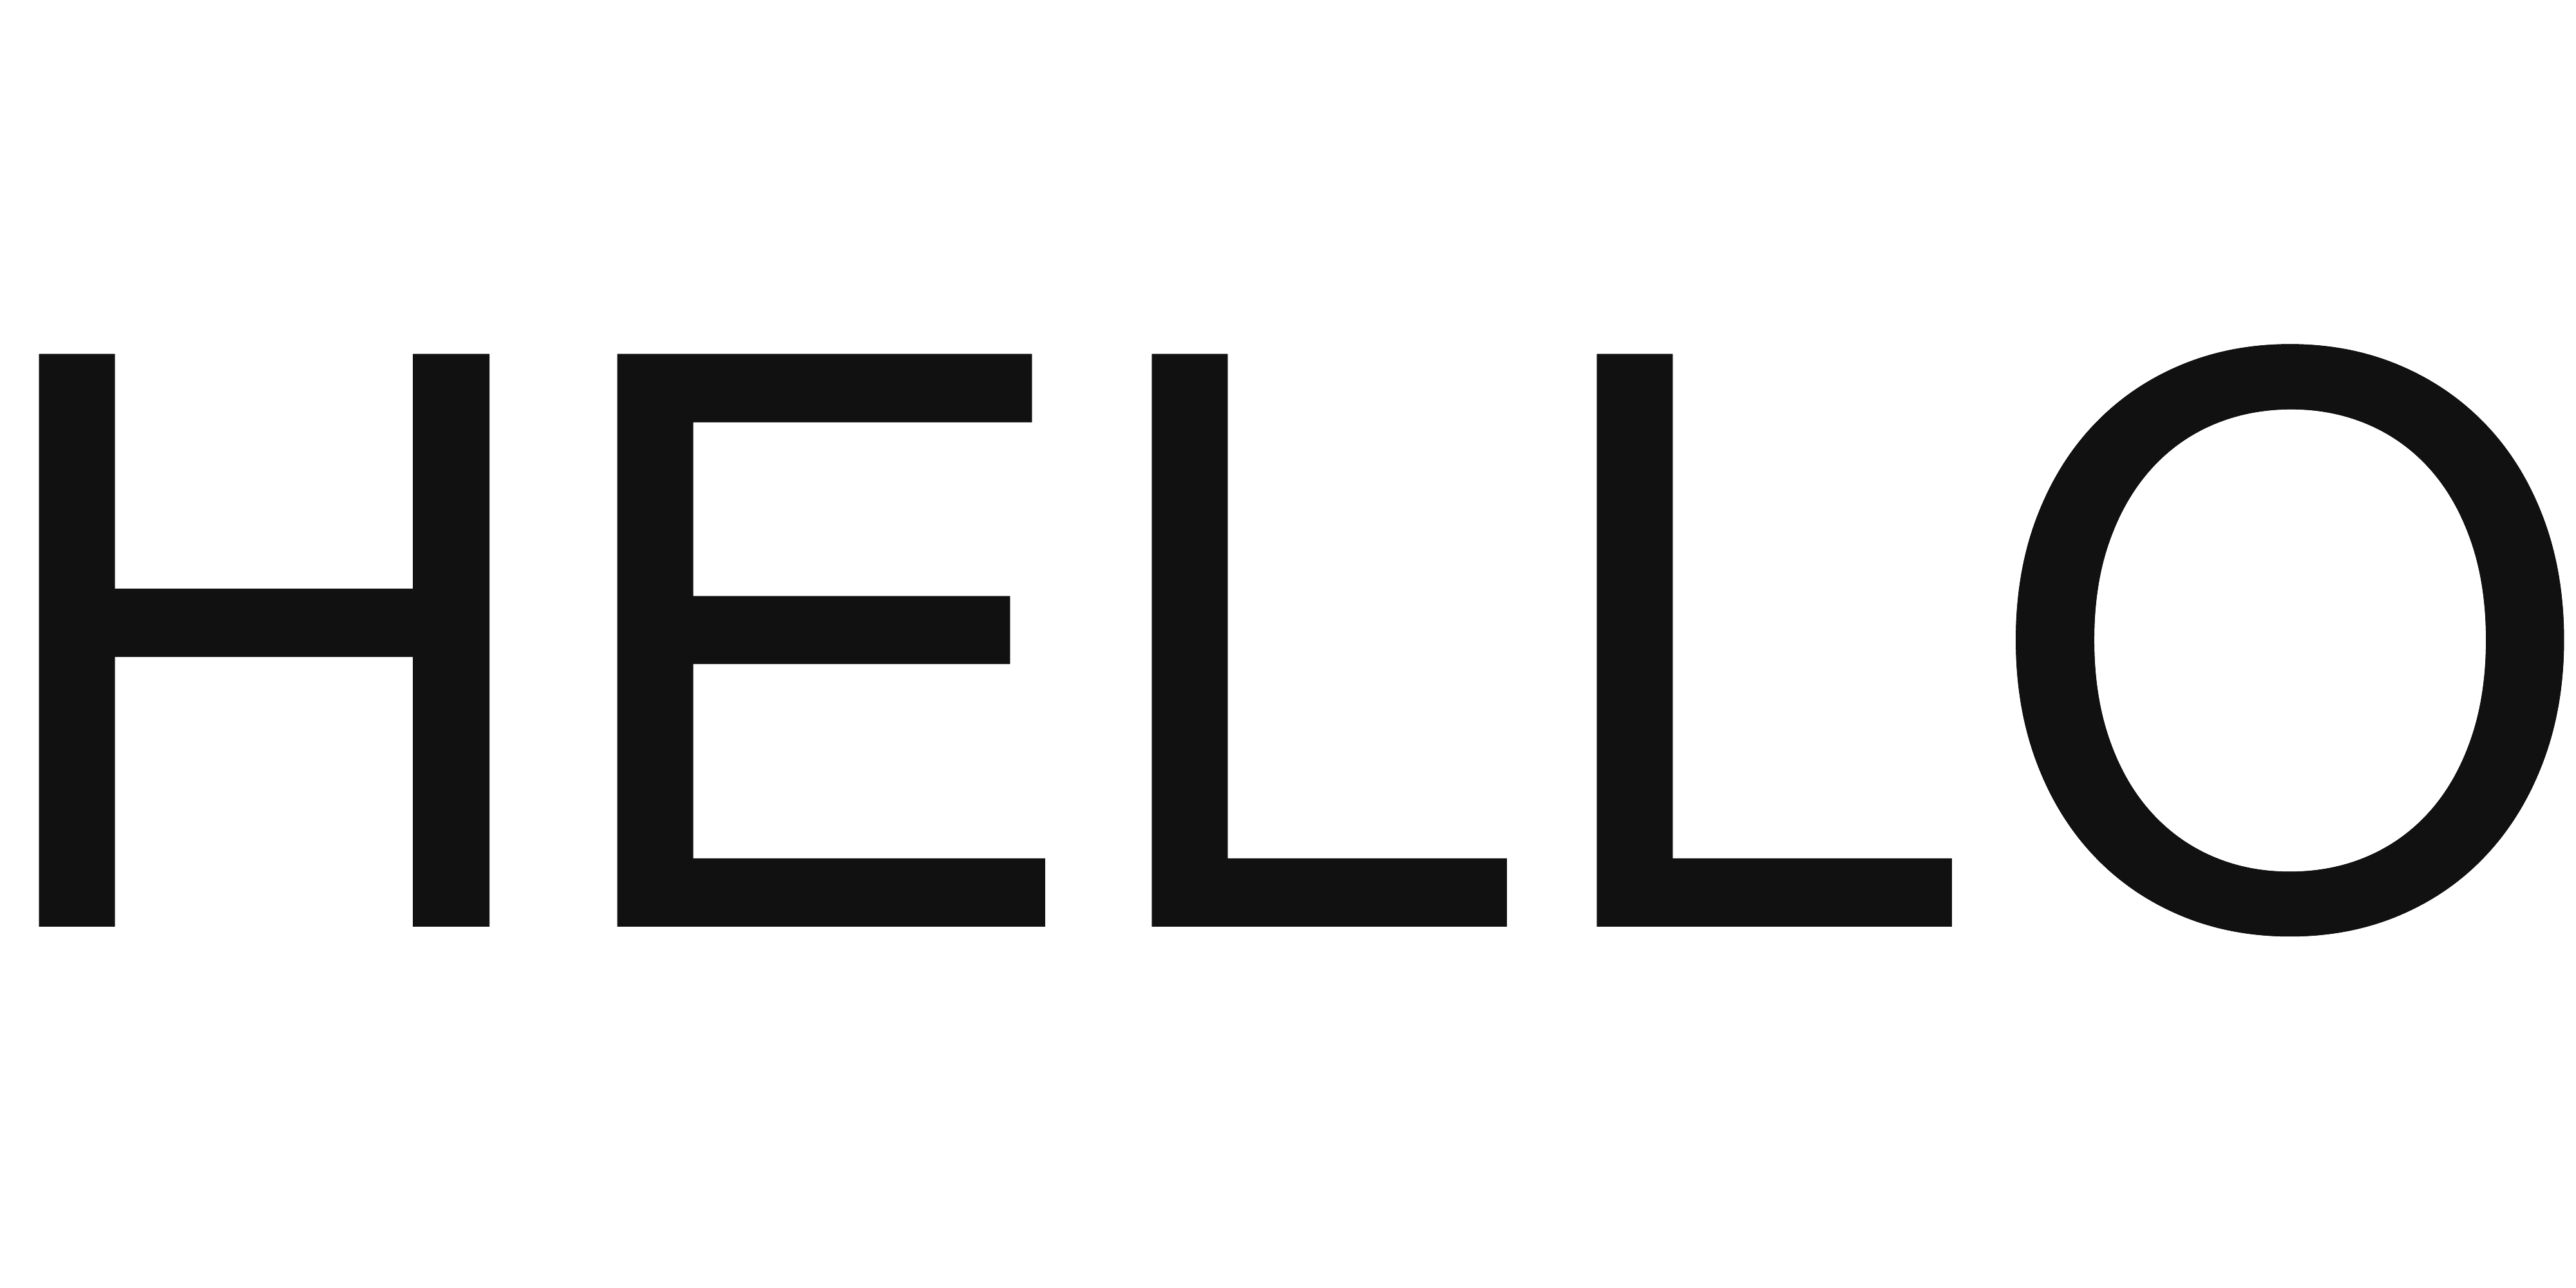 Now you can download Hello In PNG